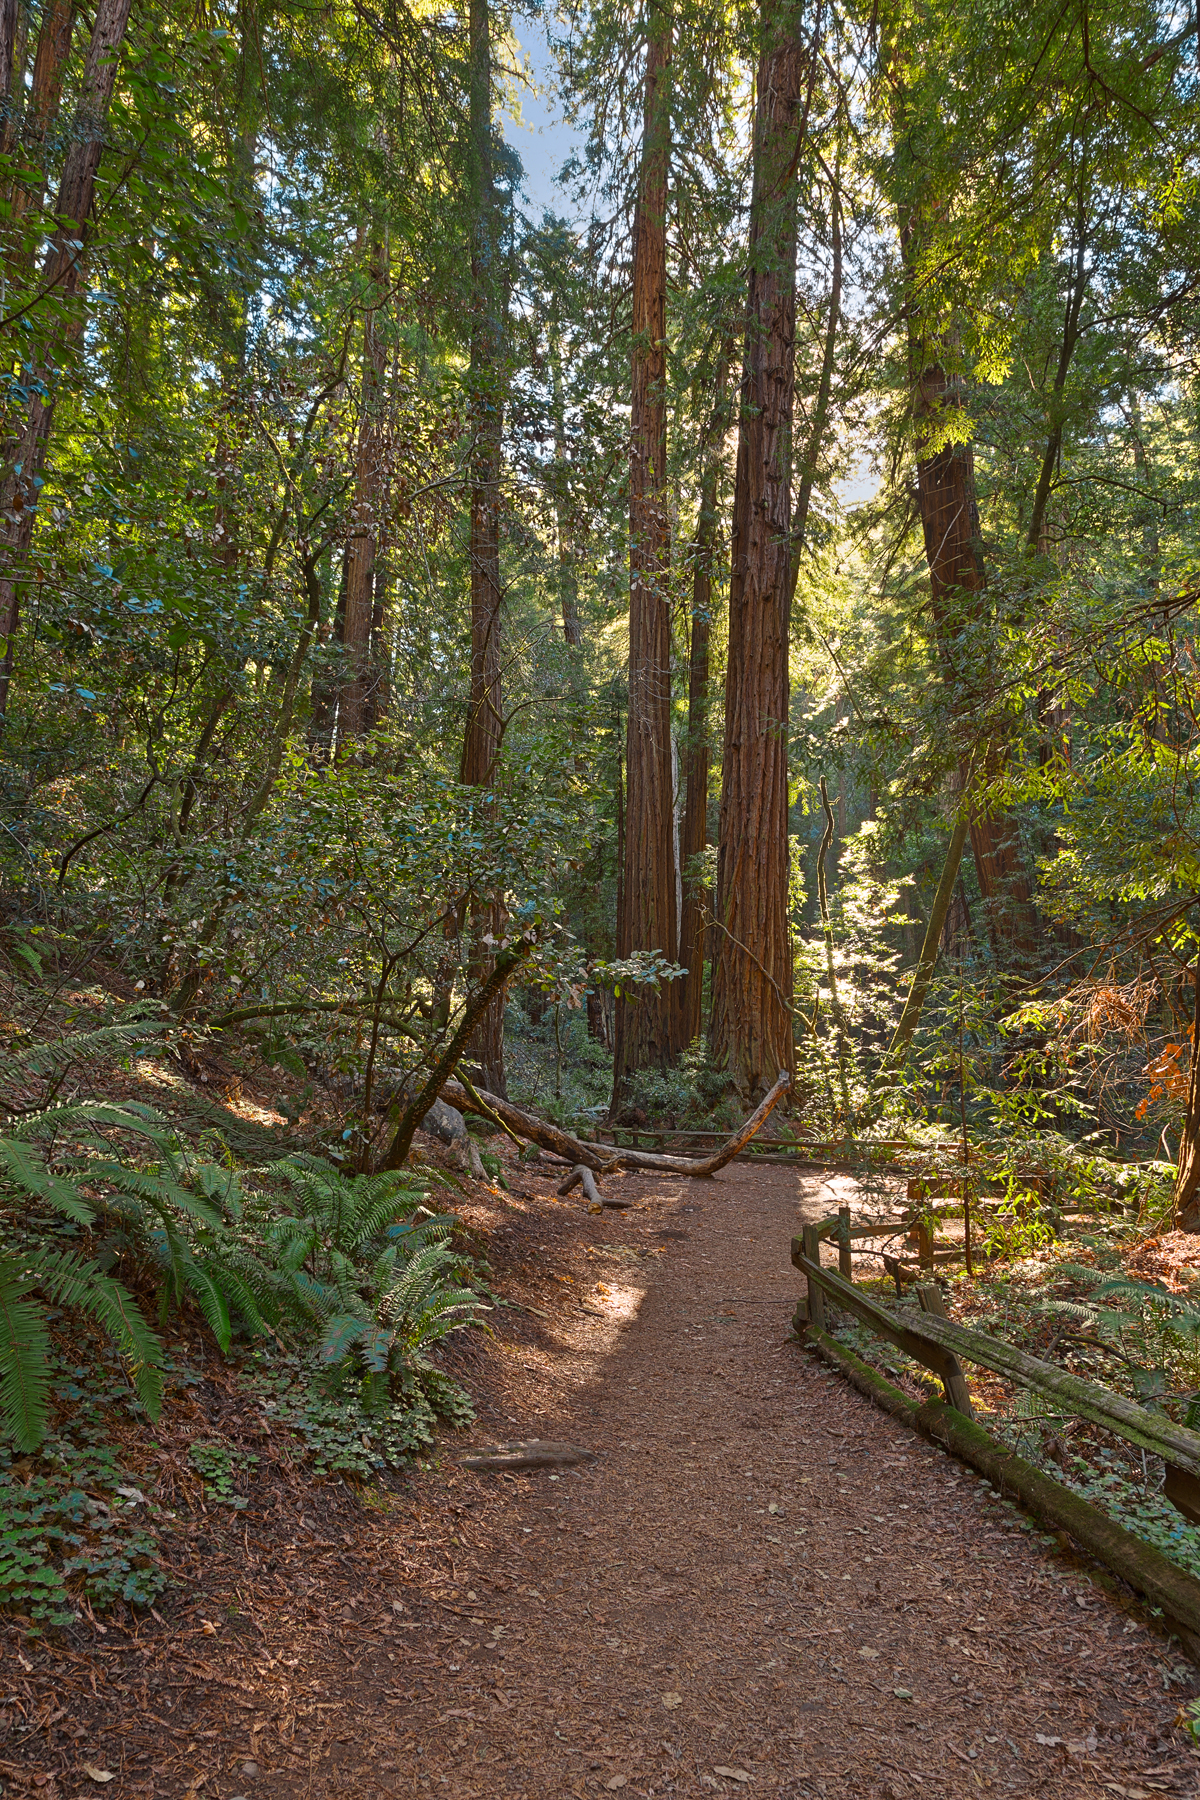 Muir woods trail - hdr photo